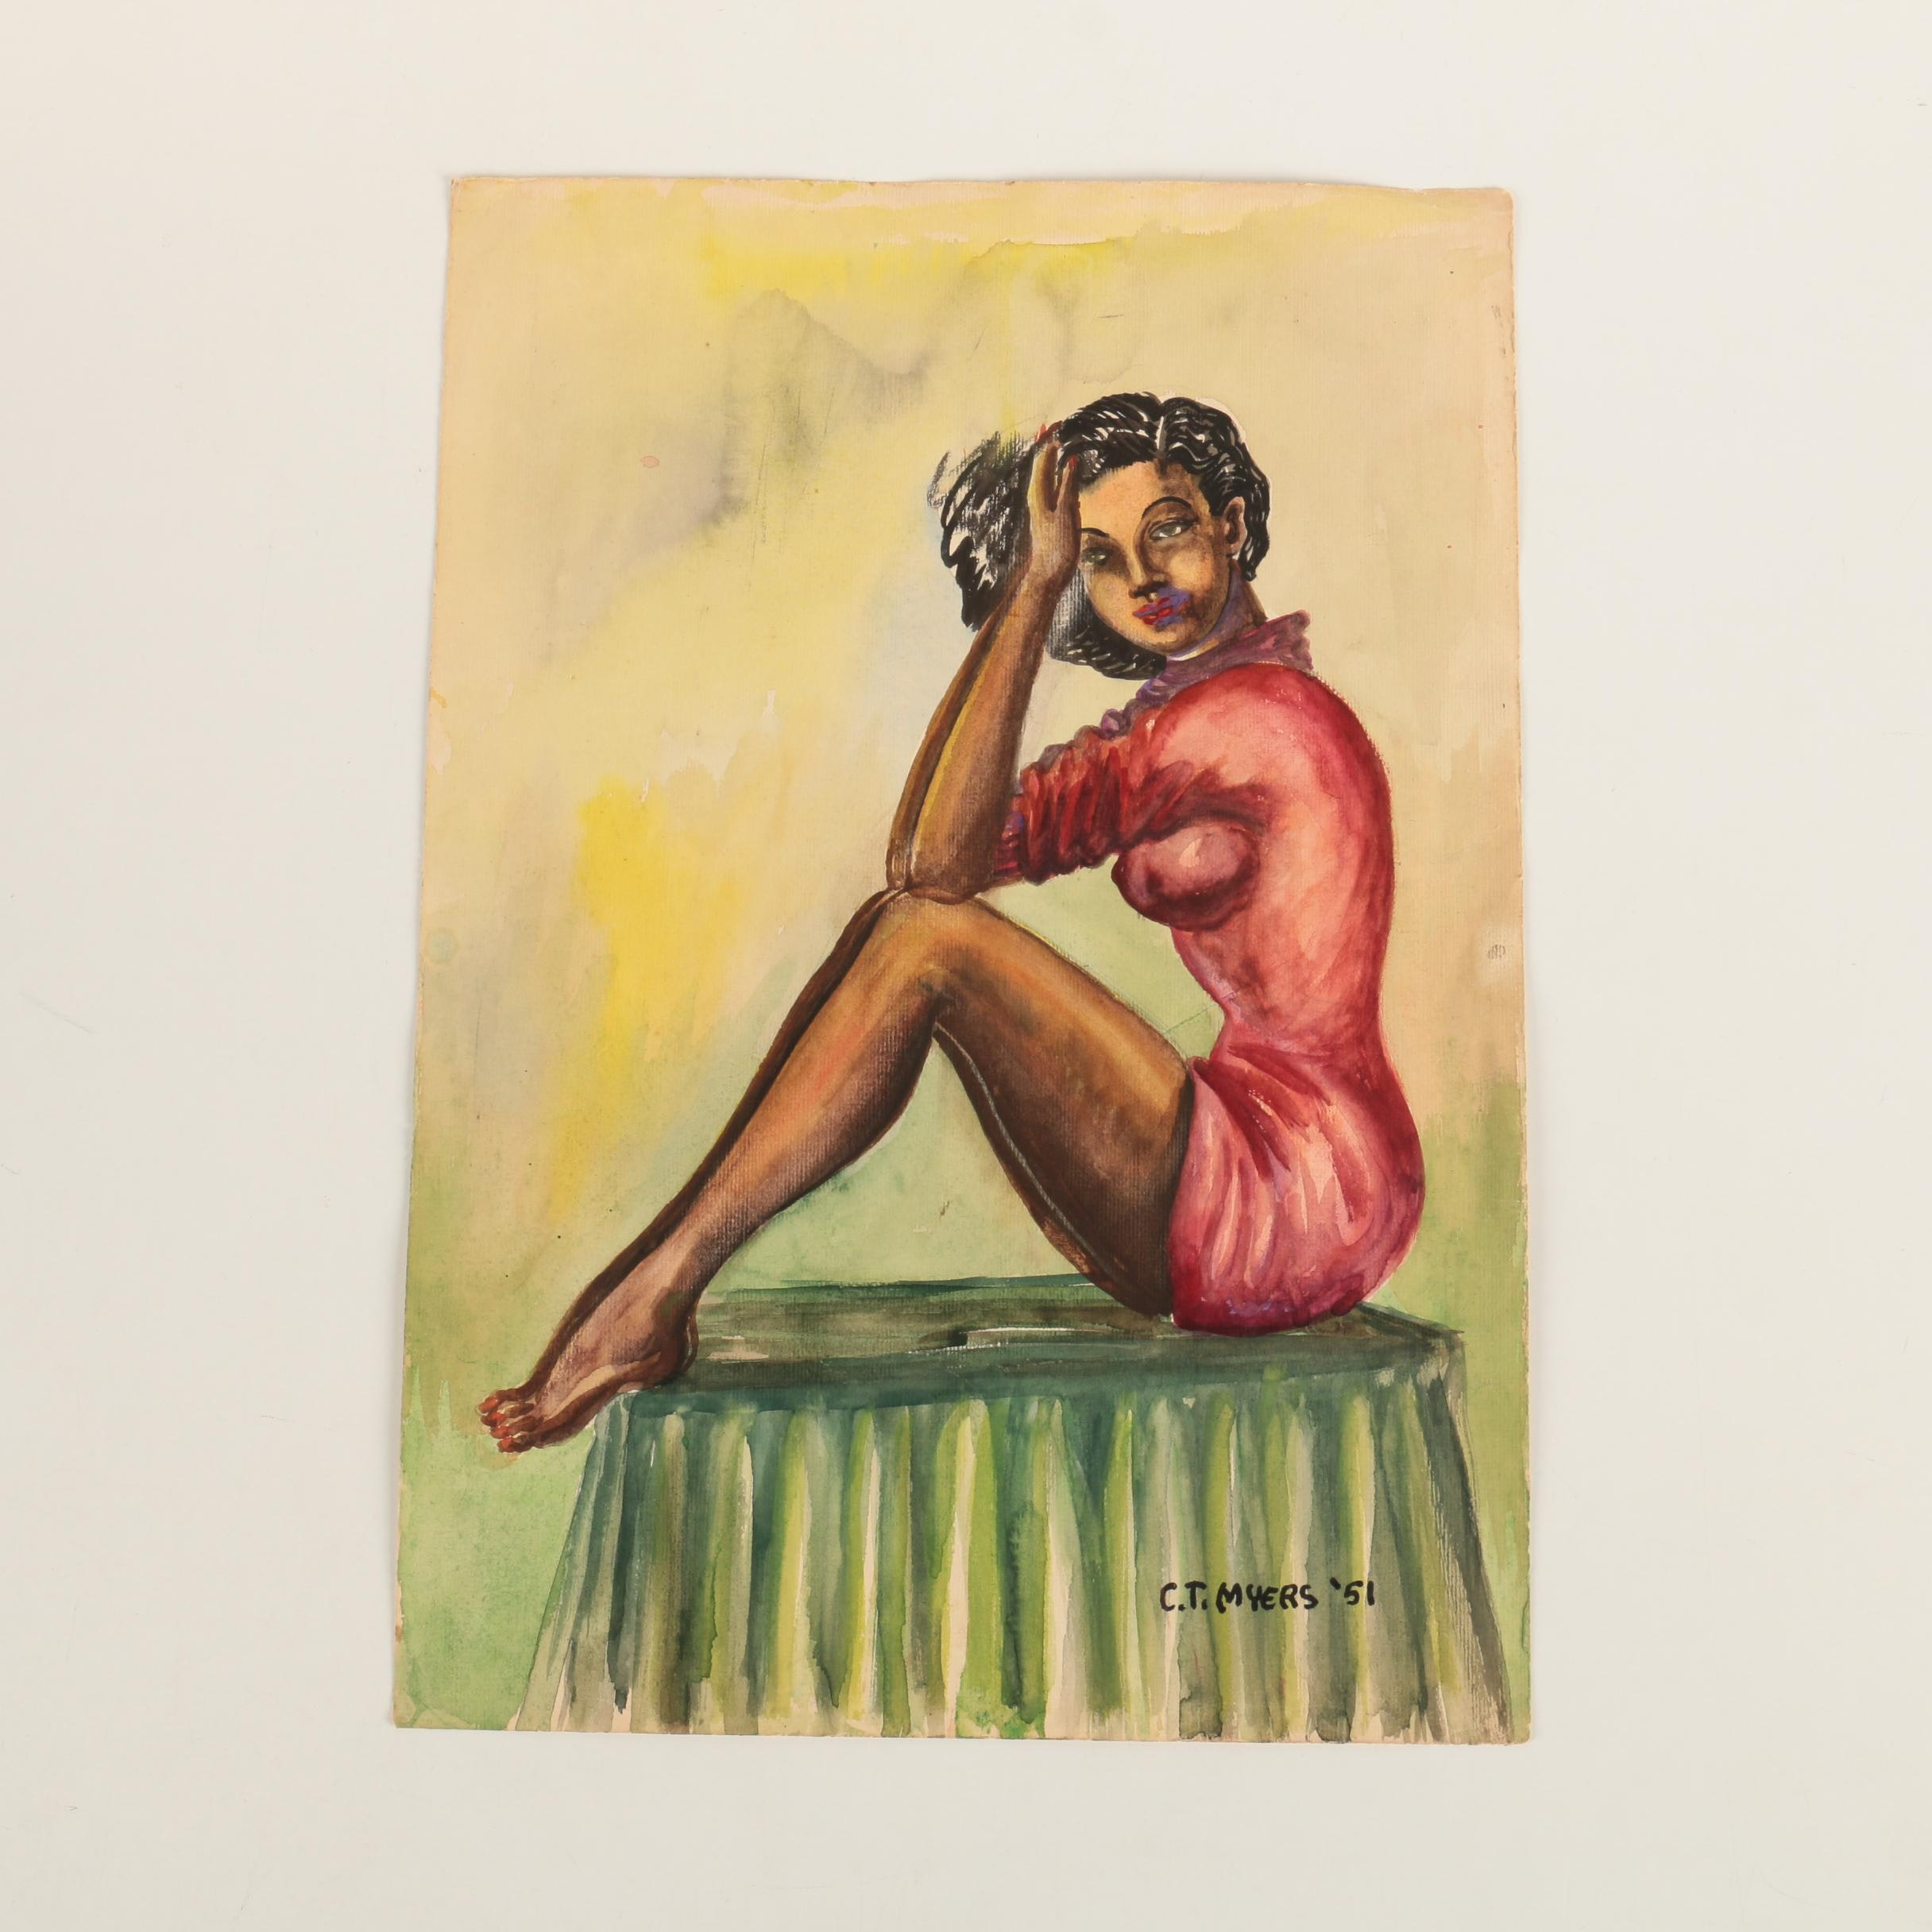 C. T. Myers Watercolor Painting of Seated Woman